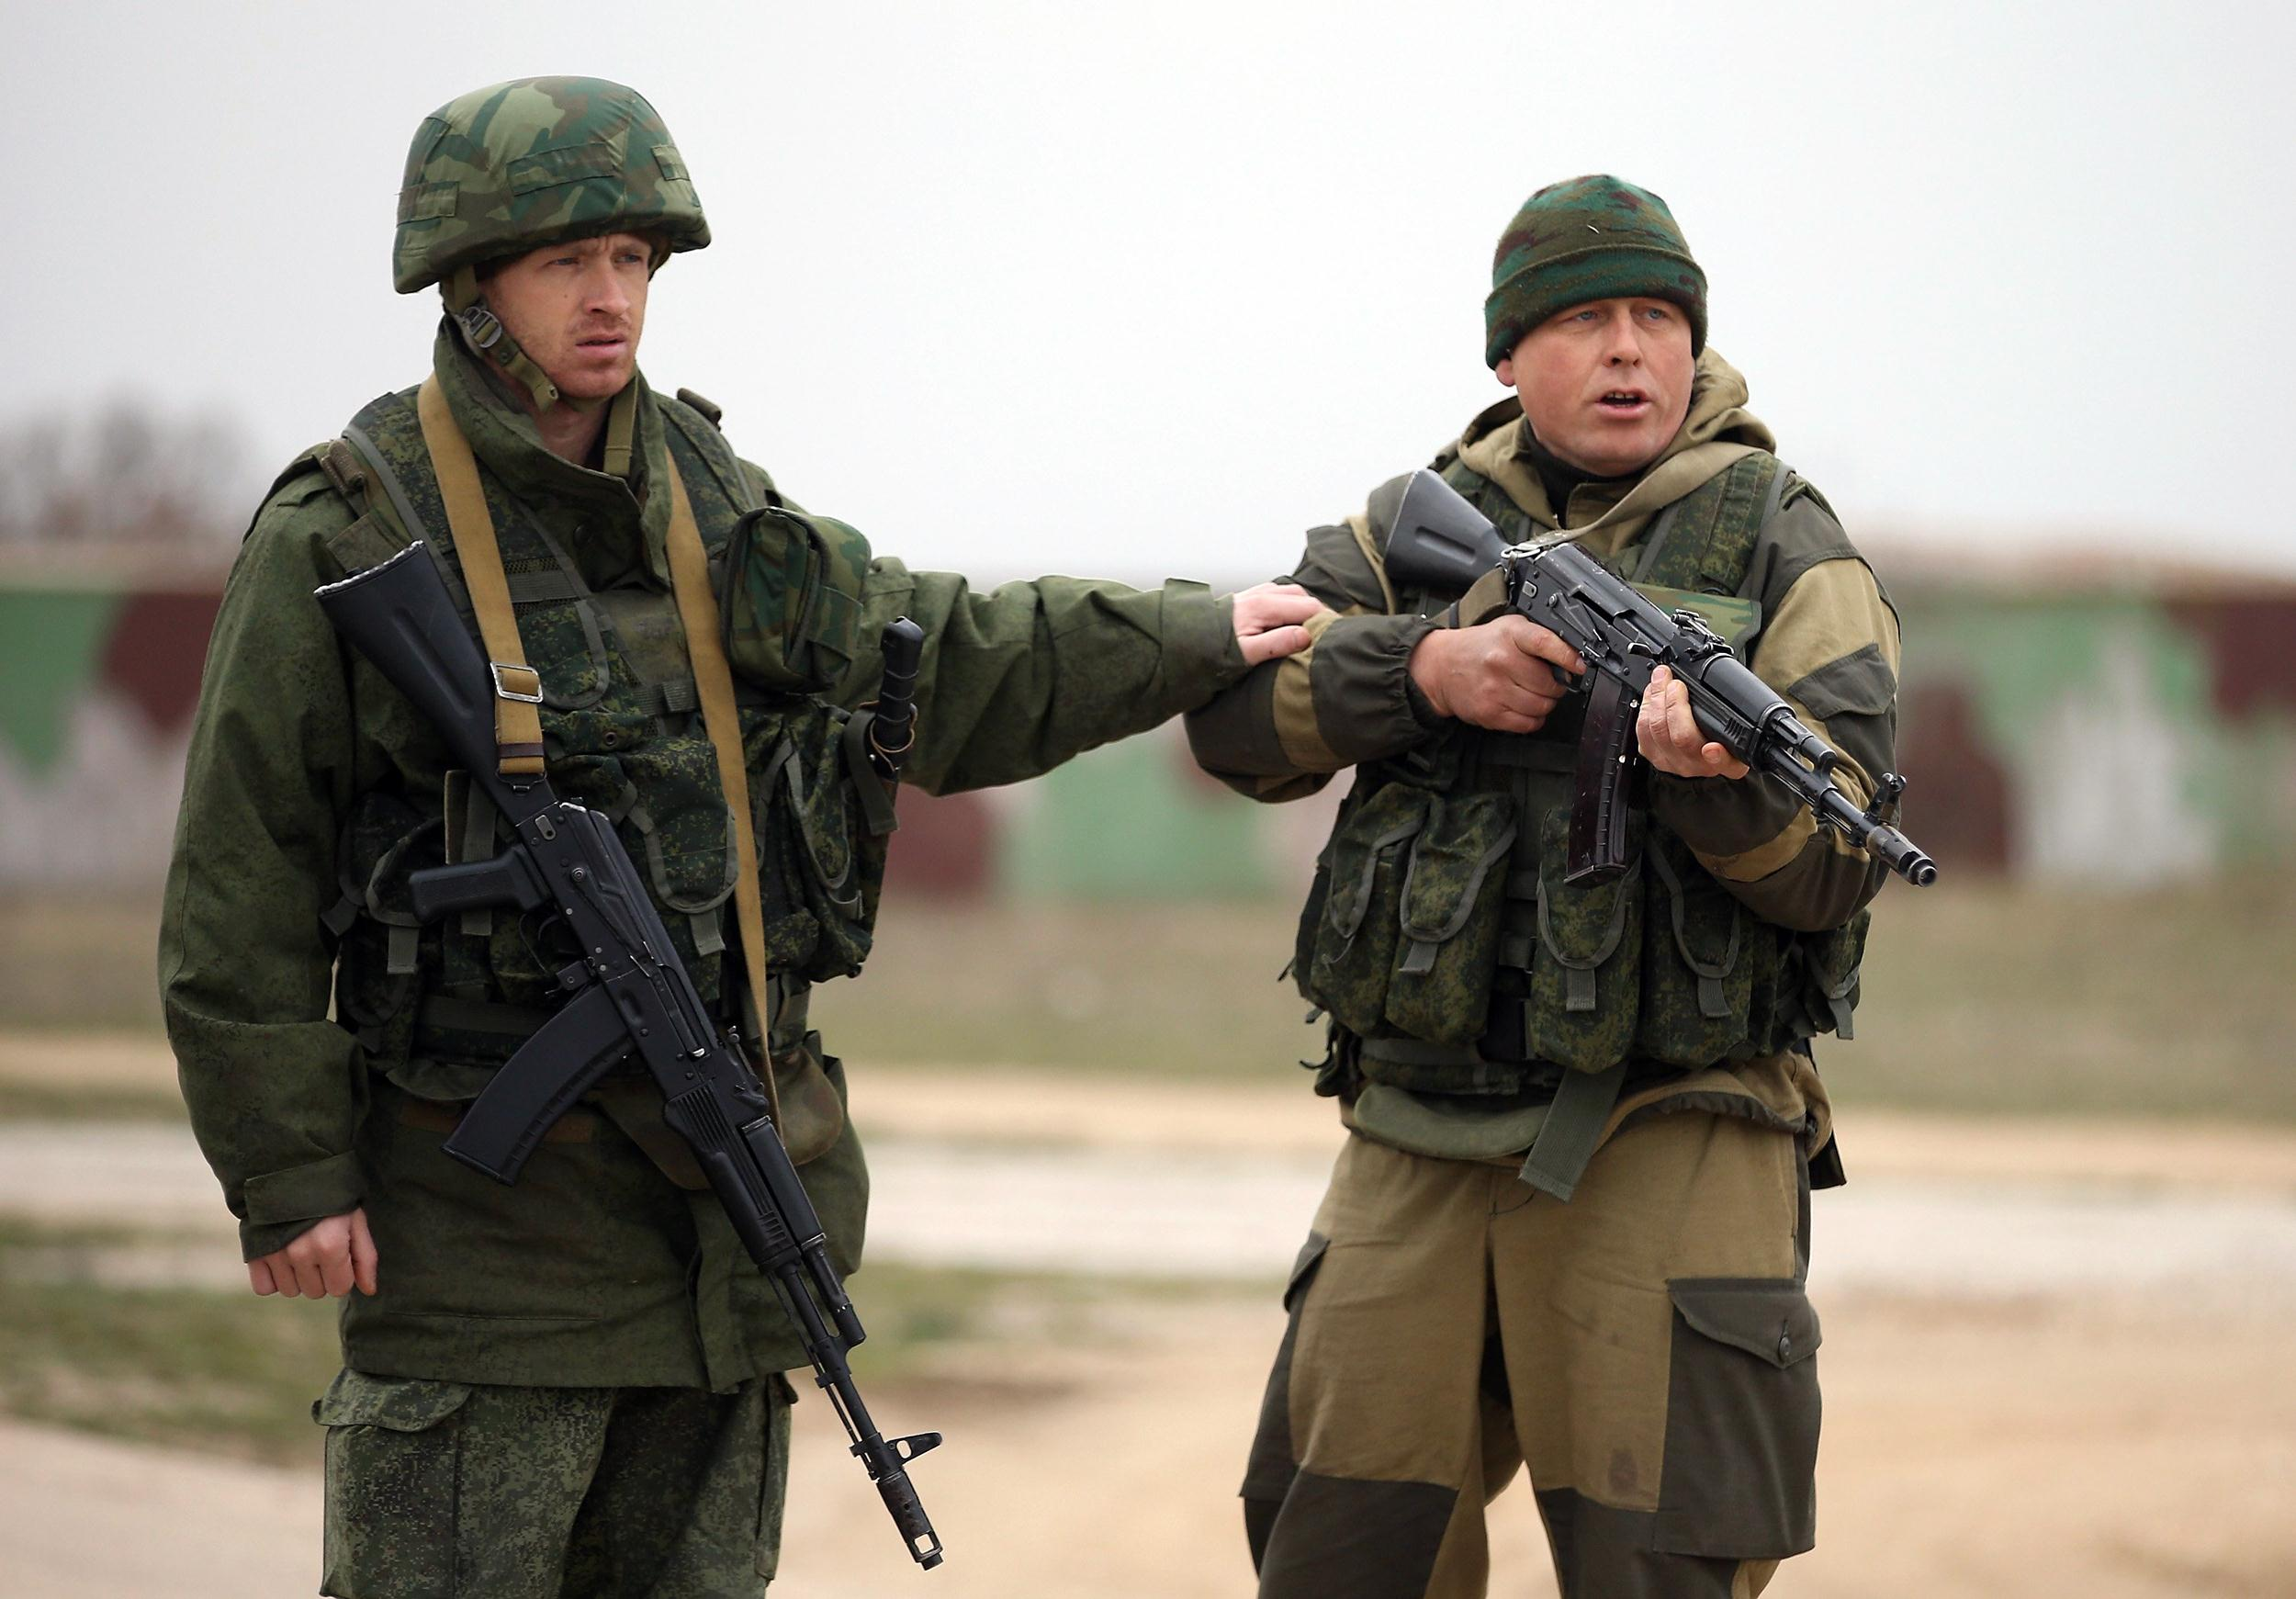 Image: A soldier under Russian command restrains a colleague after he fired his weapon into the air